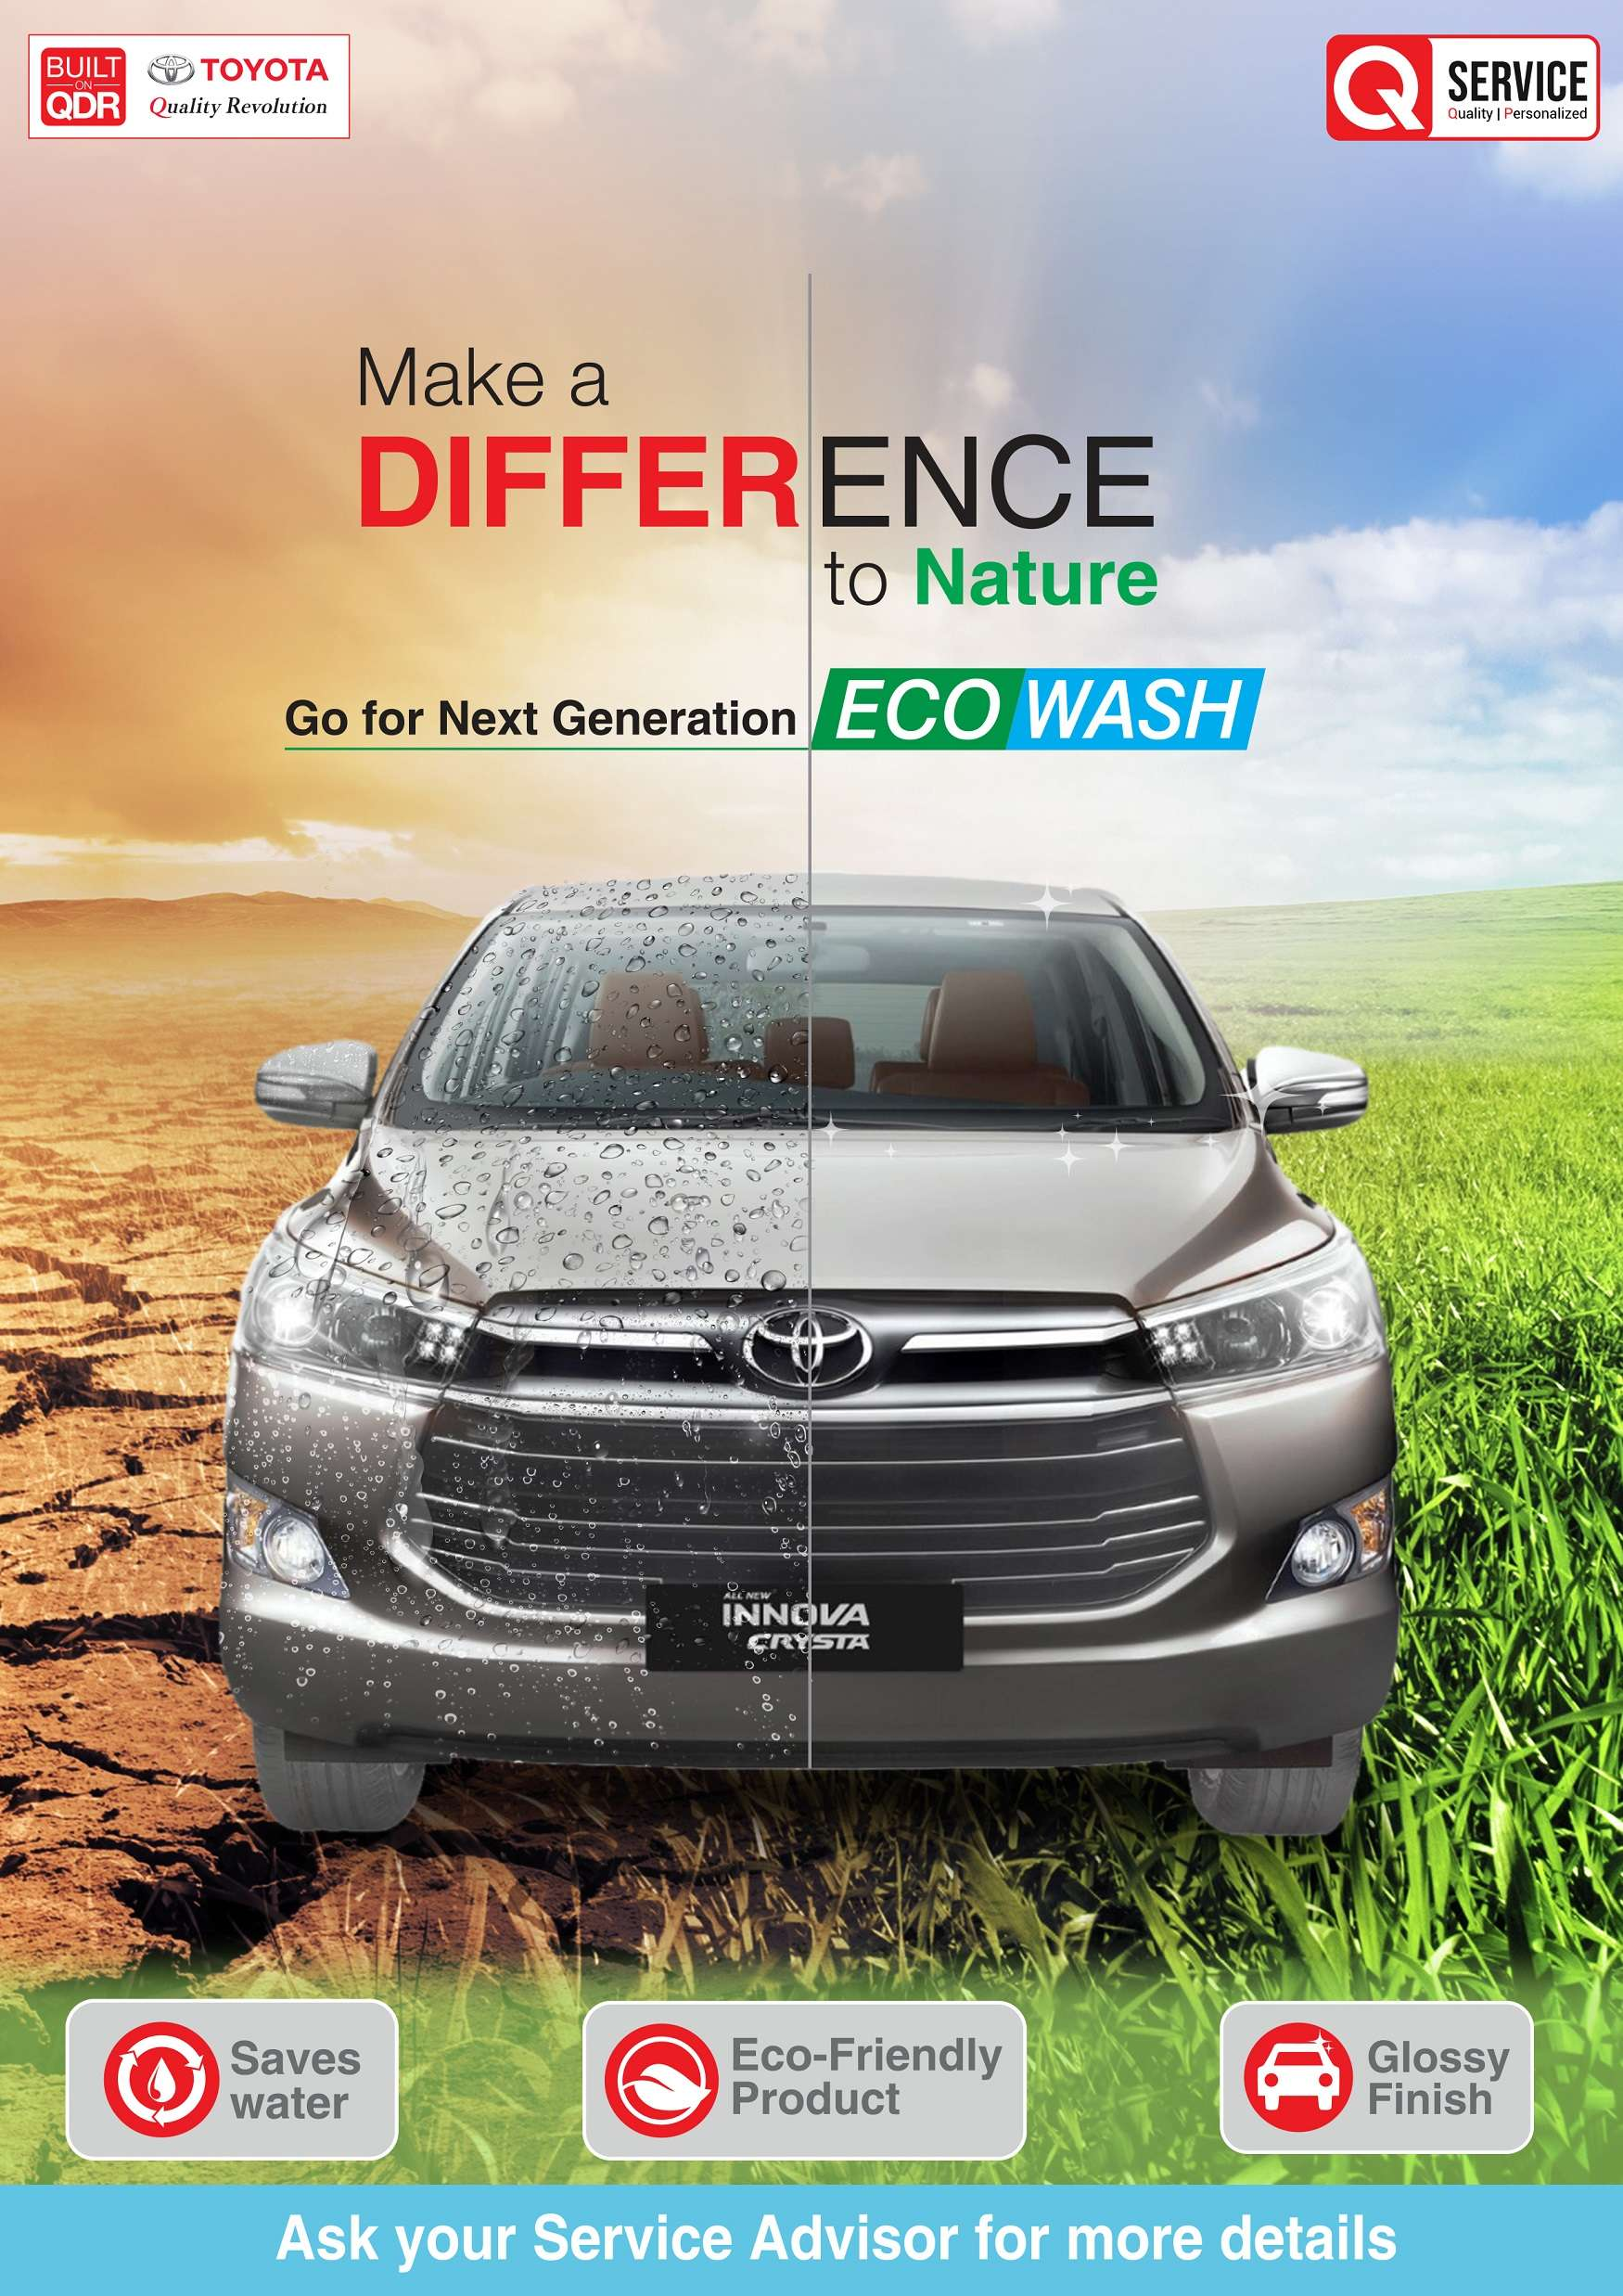 Wonderful Toyota Offers U0027ECO Car Washu0027 Service To Customers